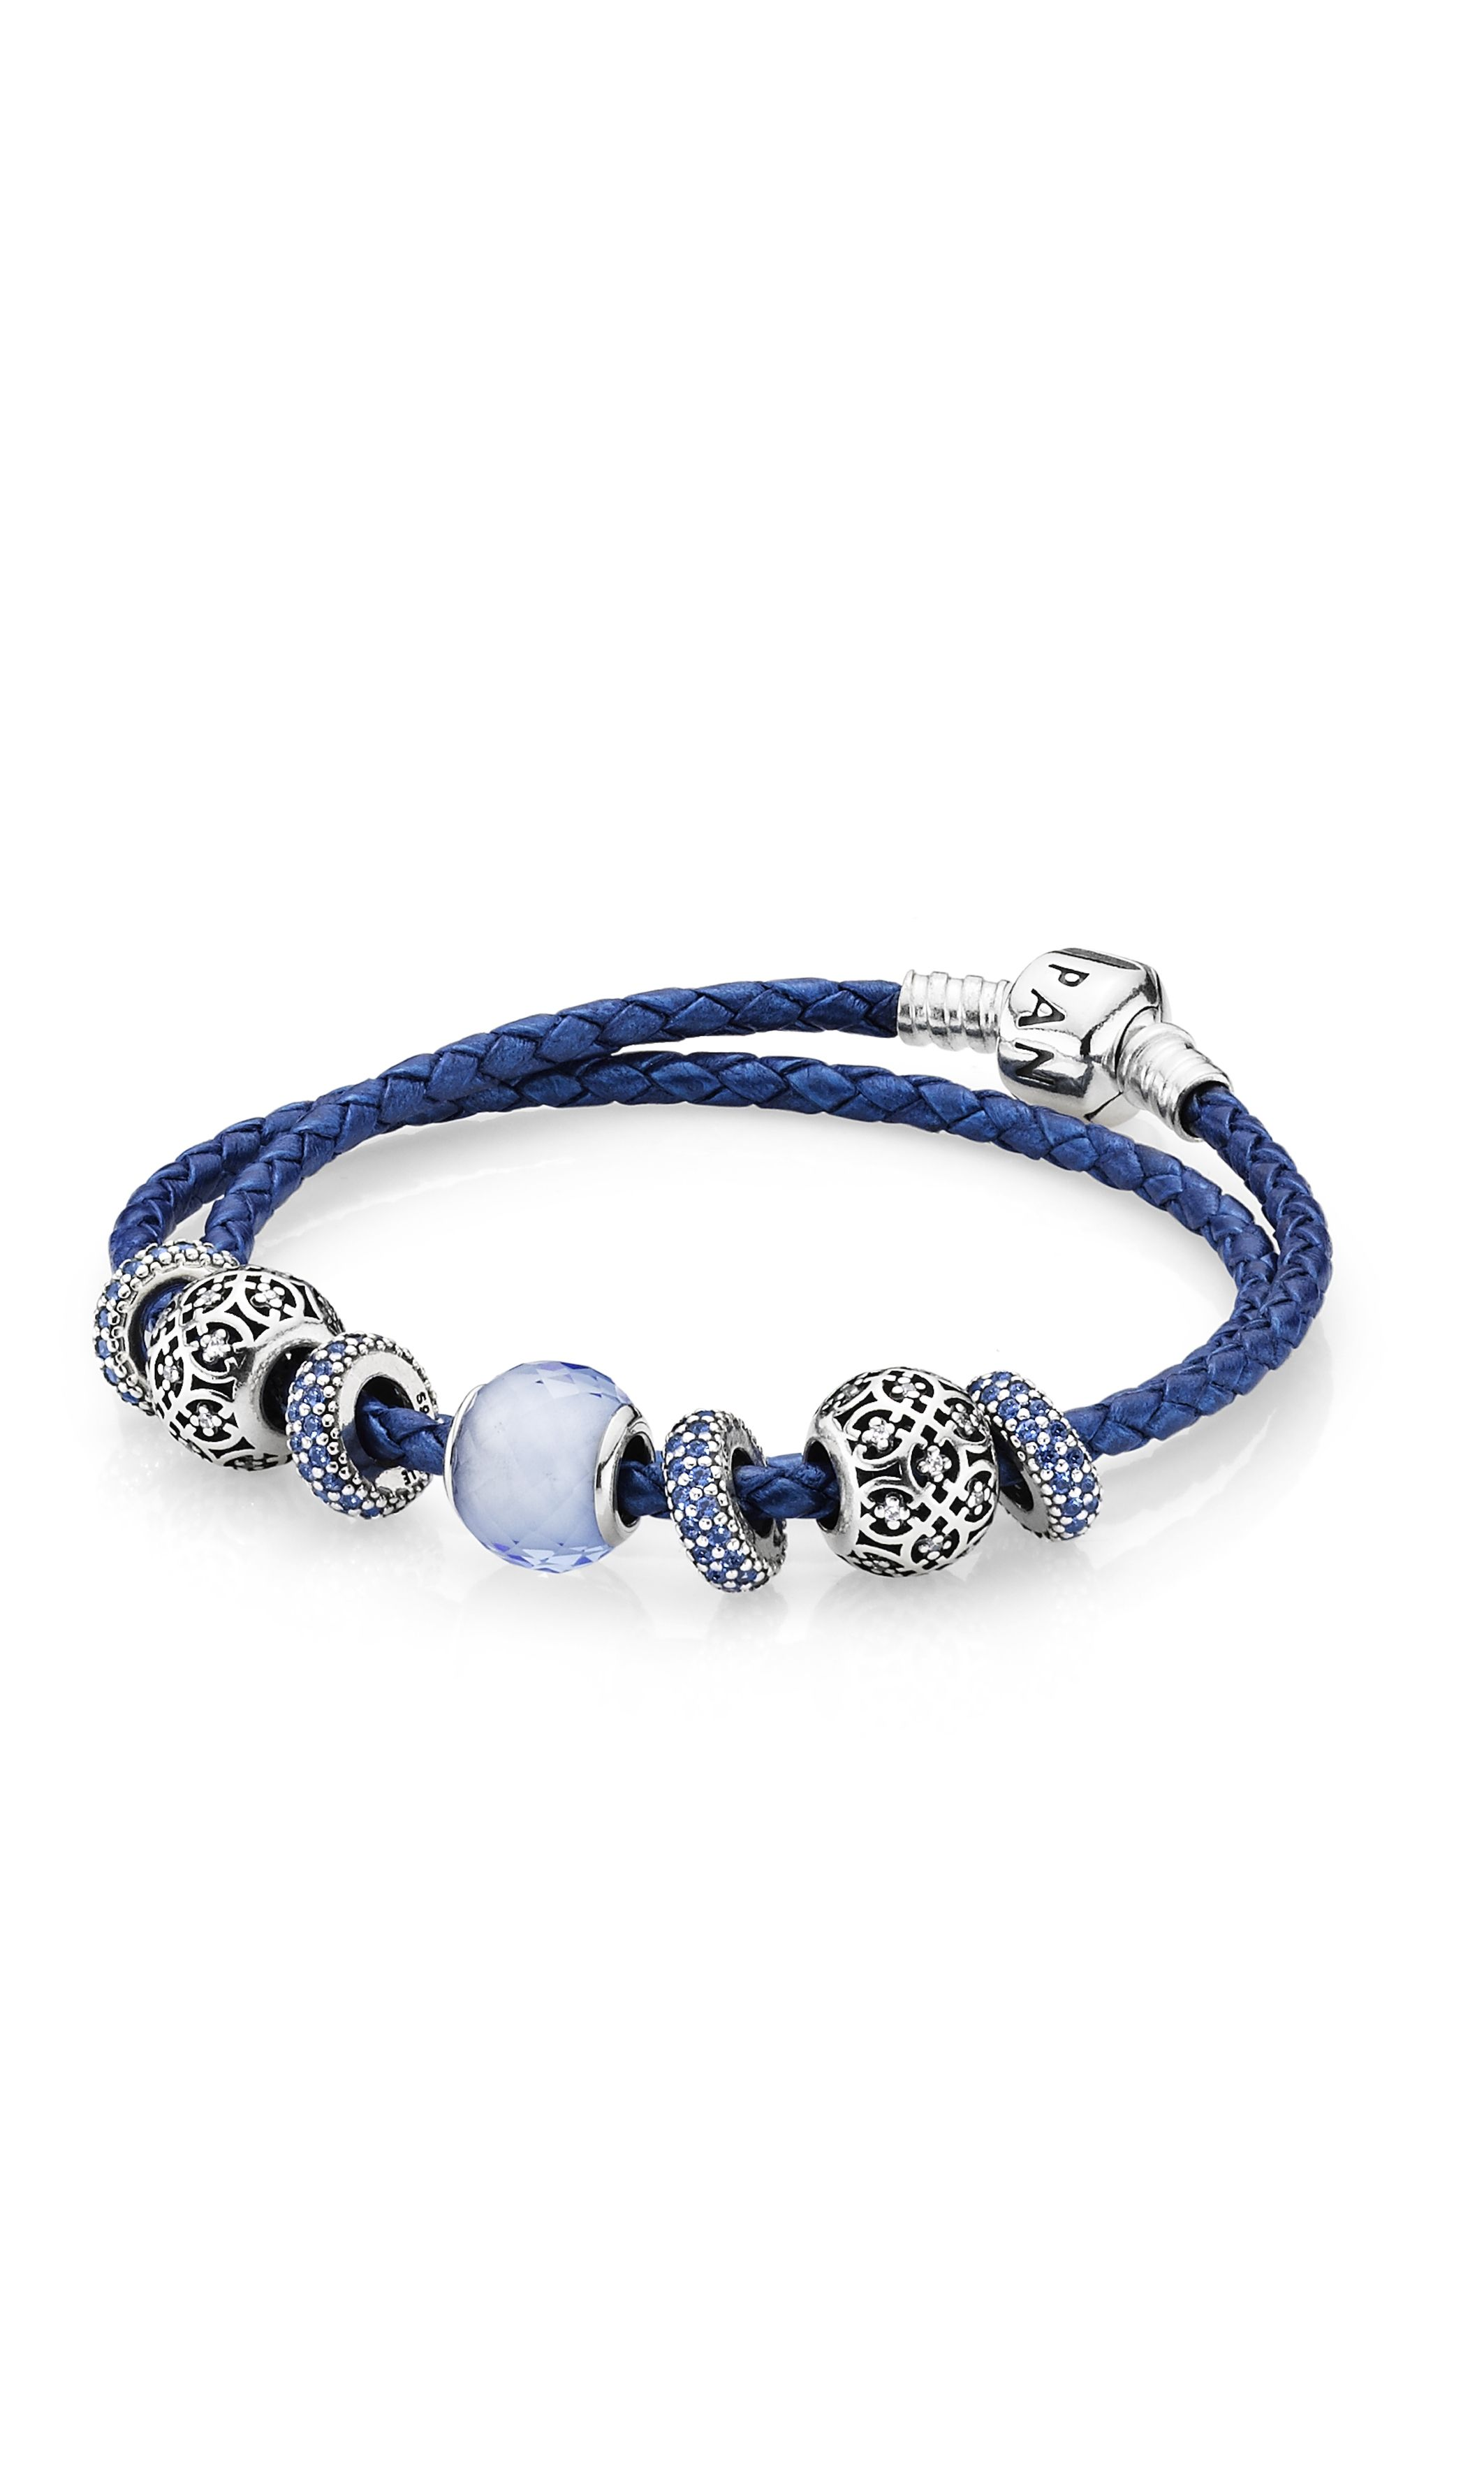 alternative an pandora off soufeel bracelet charms plus your the get extra affordable charm for femme frugality